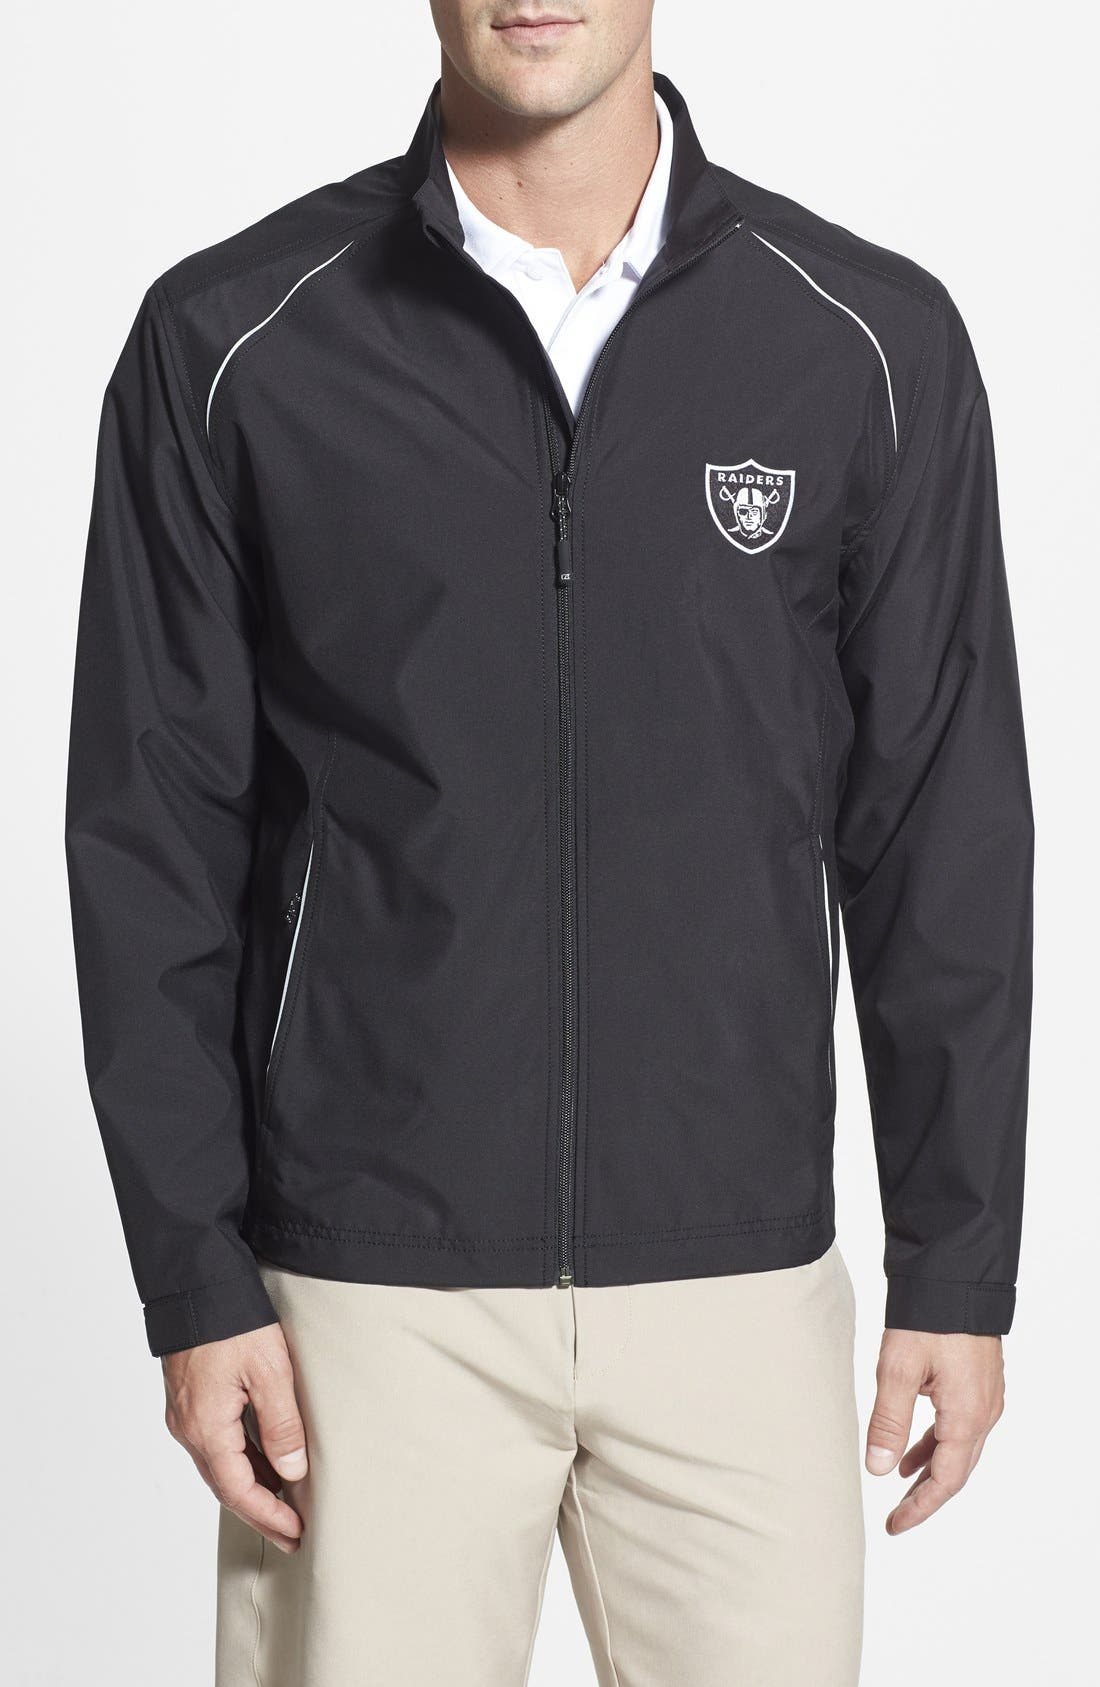 Oakland Raiders - Beacon WeatherTec Wind & Water Resistant Jacket,                             Main thumbnail 1, color,                             001